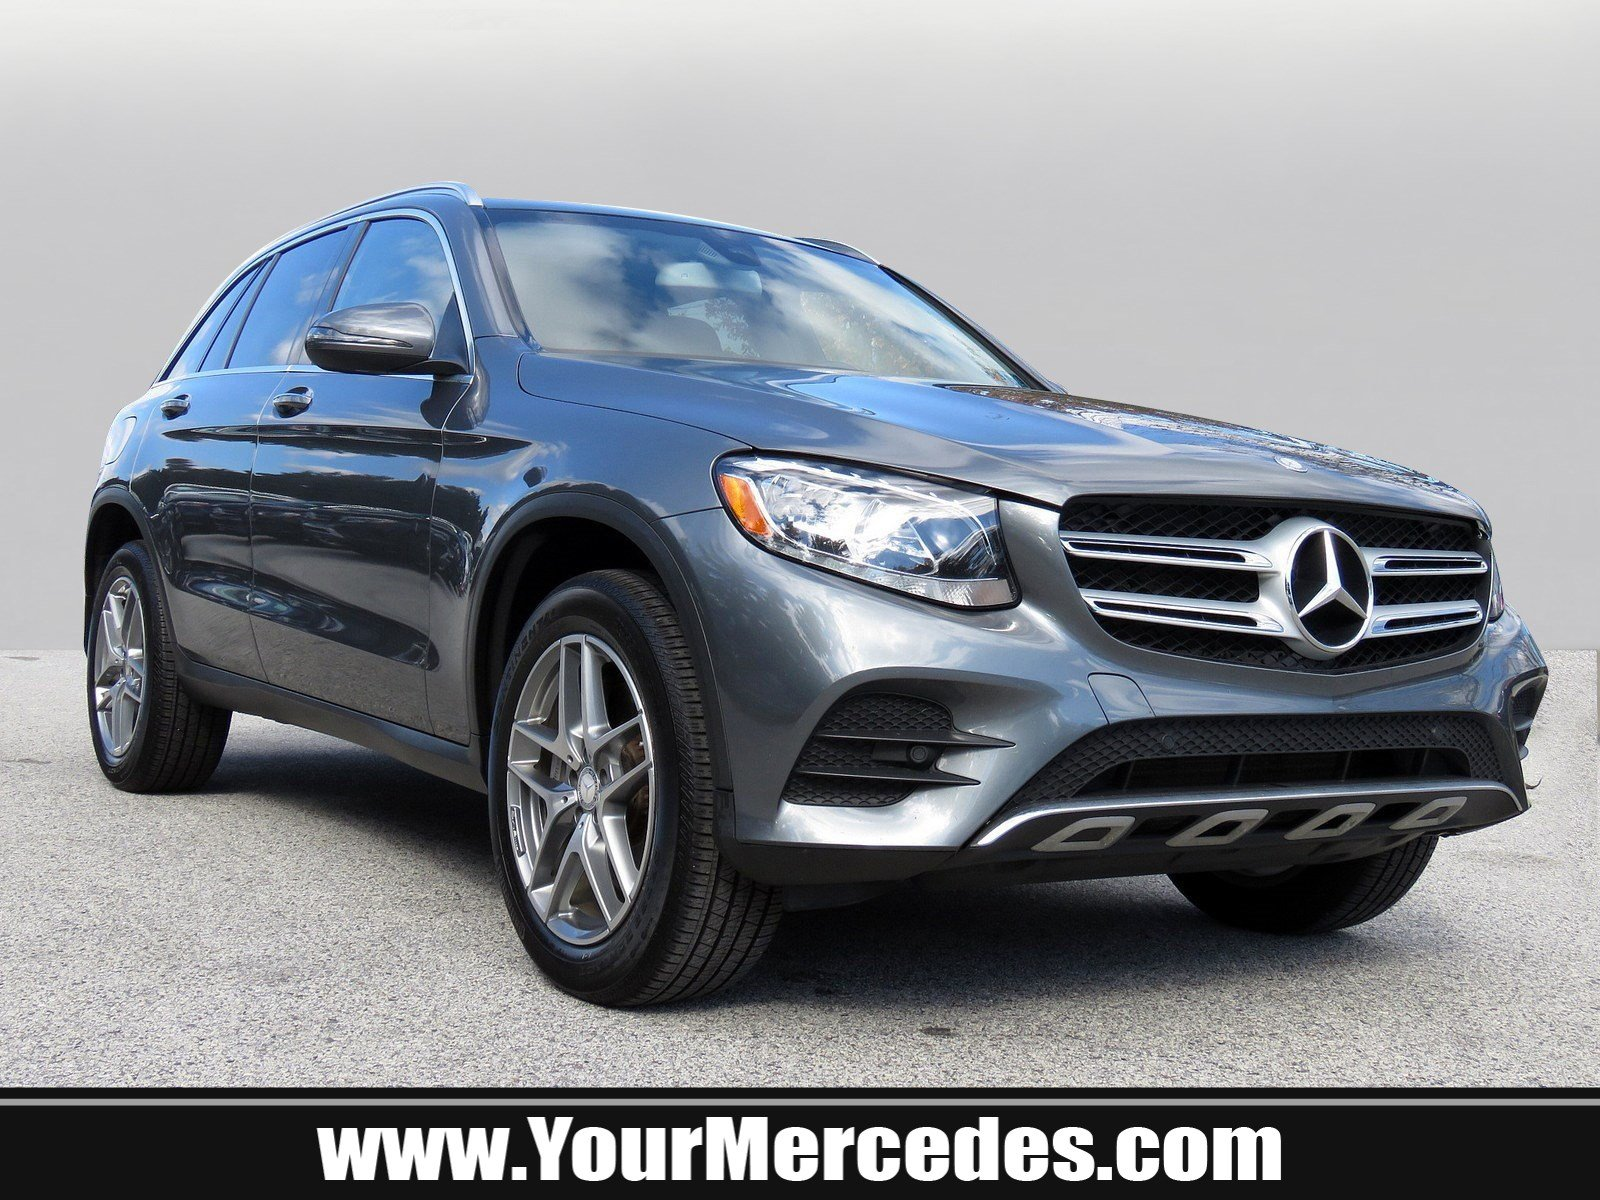 Certified Pre Owned 2016 Mercedes Benz GLC GLC 300 Sport SUV in West